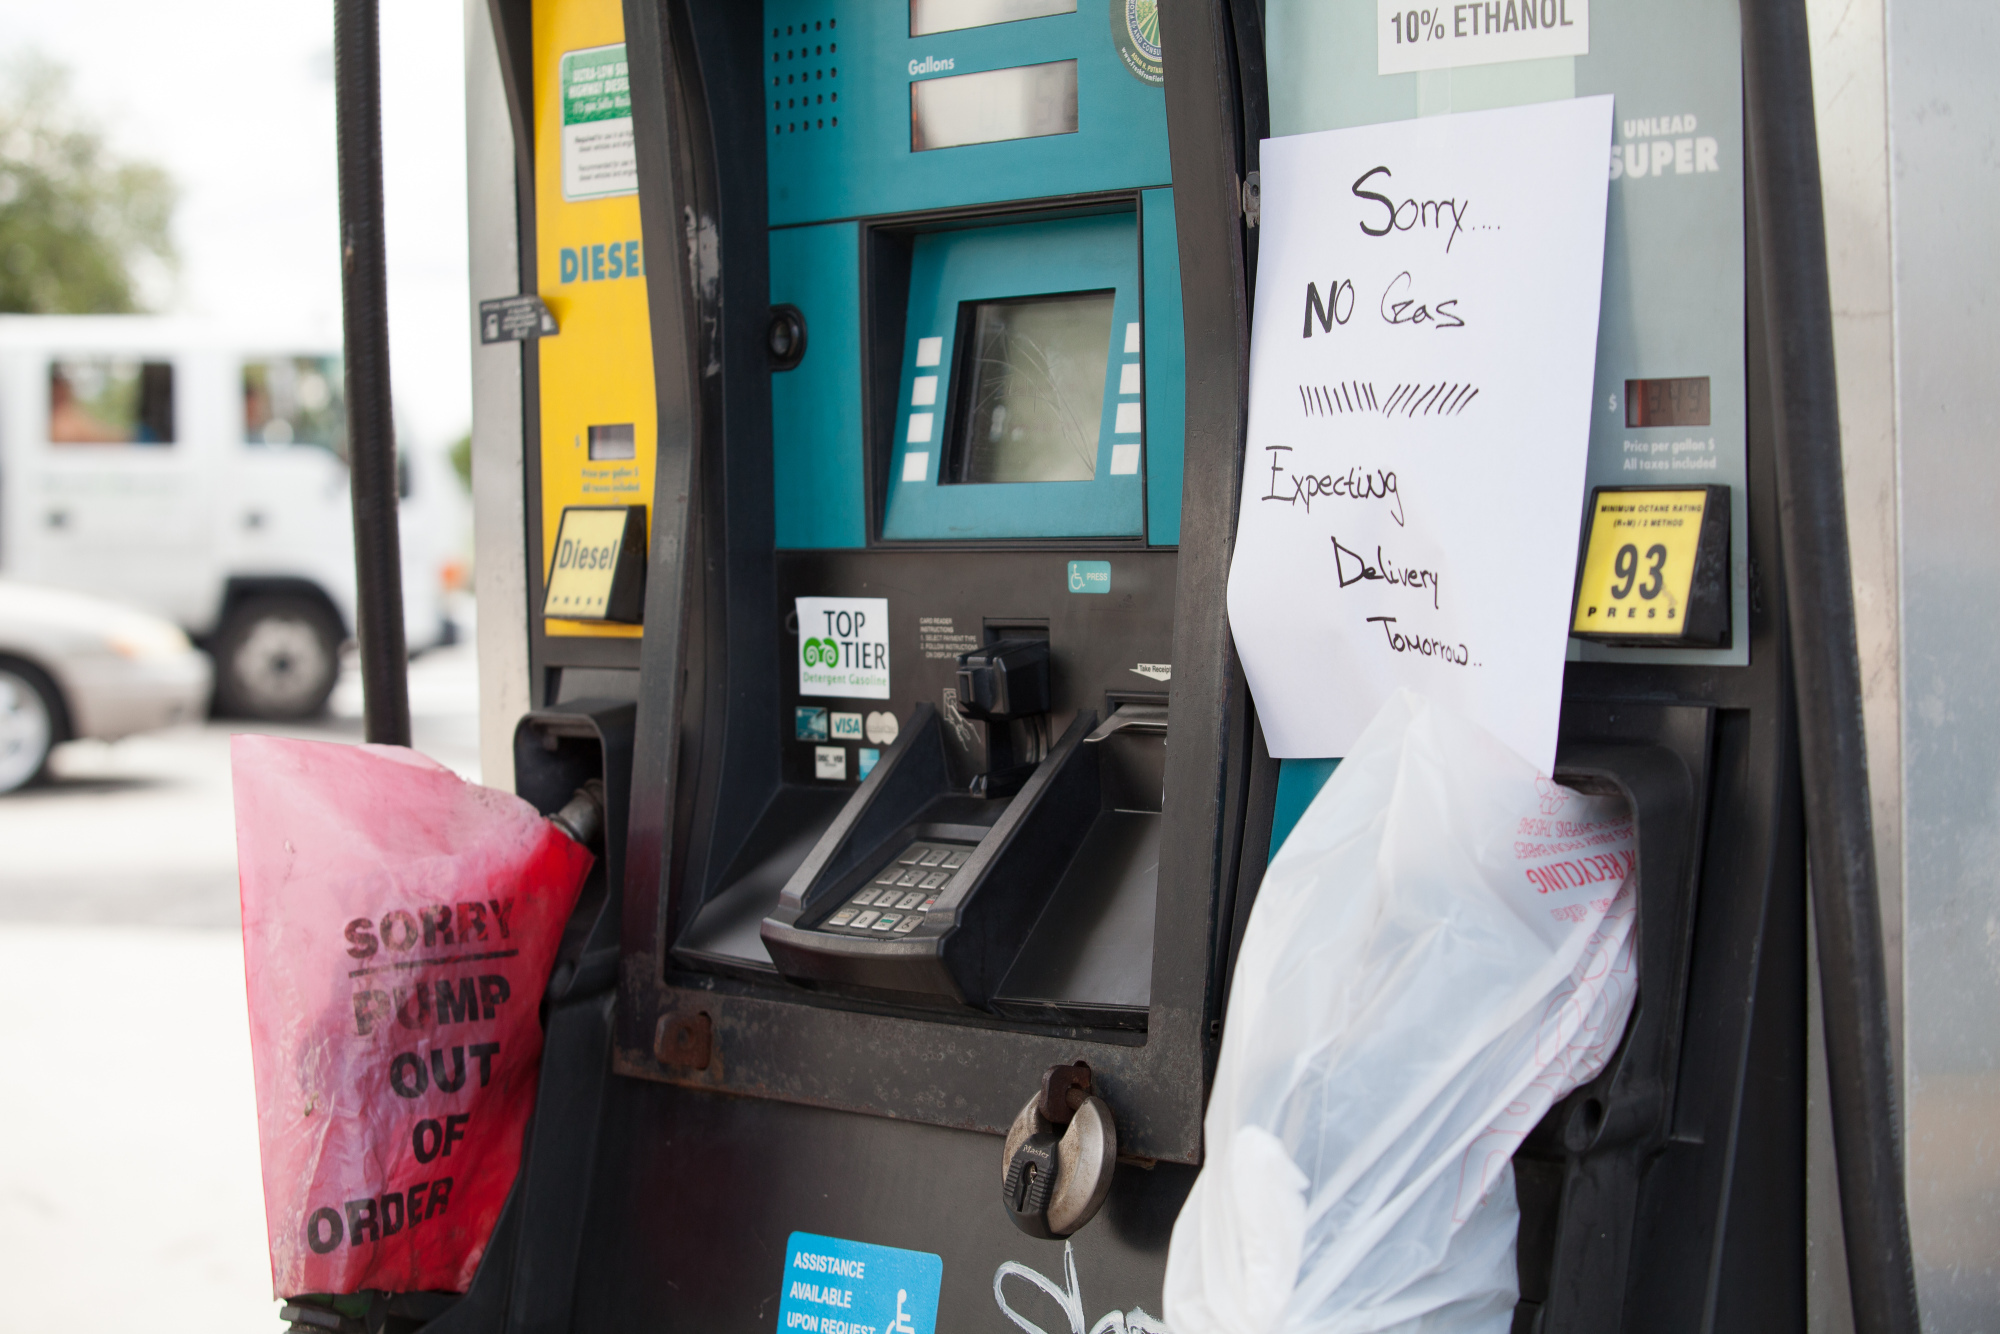 """A sign reading """"Sorry...No Gas"""" is displayed on a fuel pump at a Valero Energy Corp. gas station ahead of Hurricane Irma in Miami, Florida, U.S., on Wednesday, Sept. 6, 2017. Photographer: Jayme Gershen/Bloomberg"""